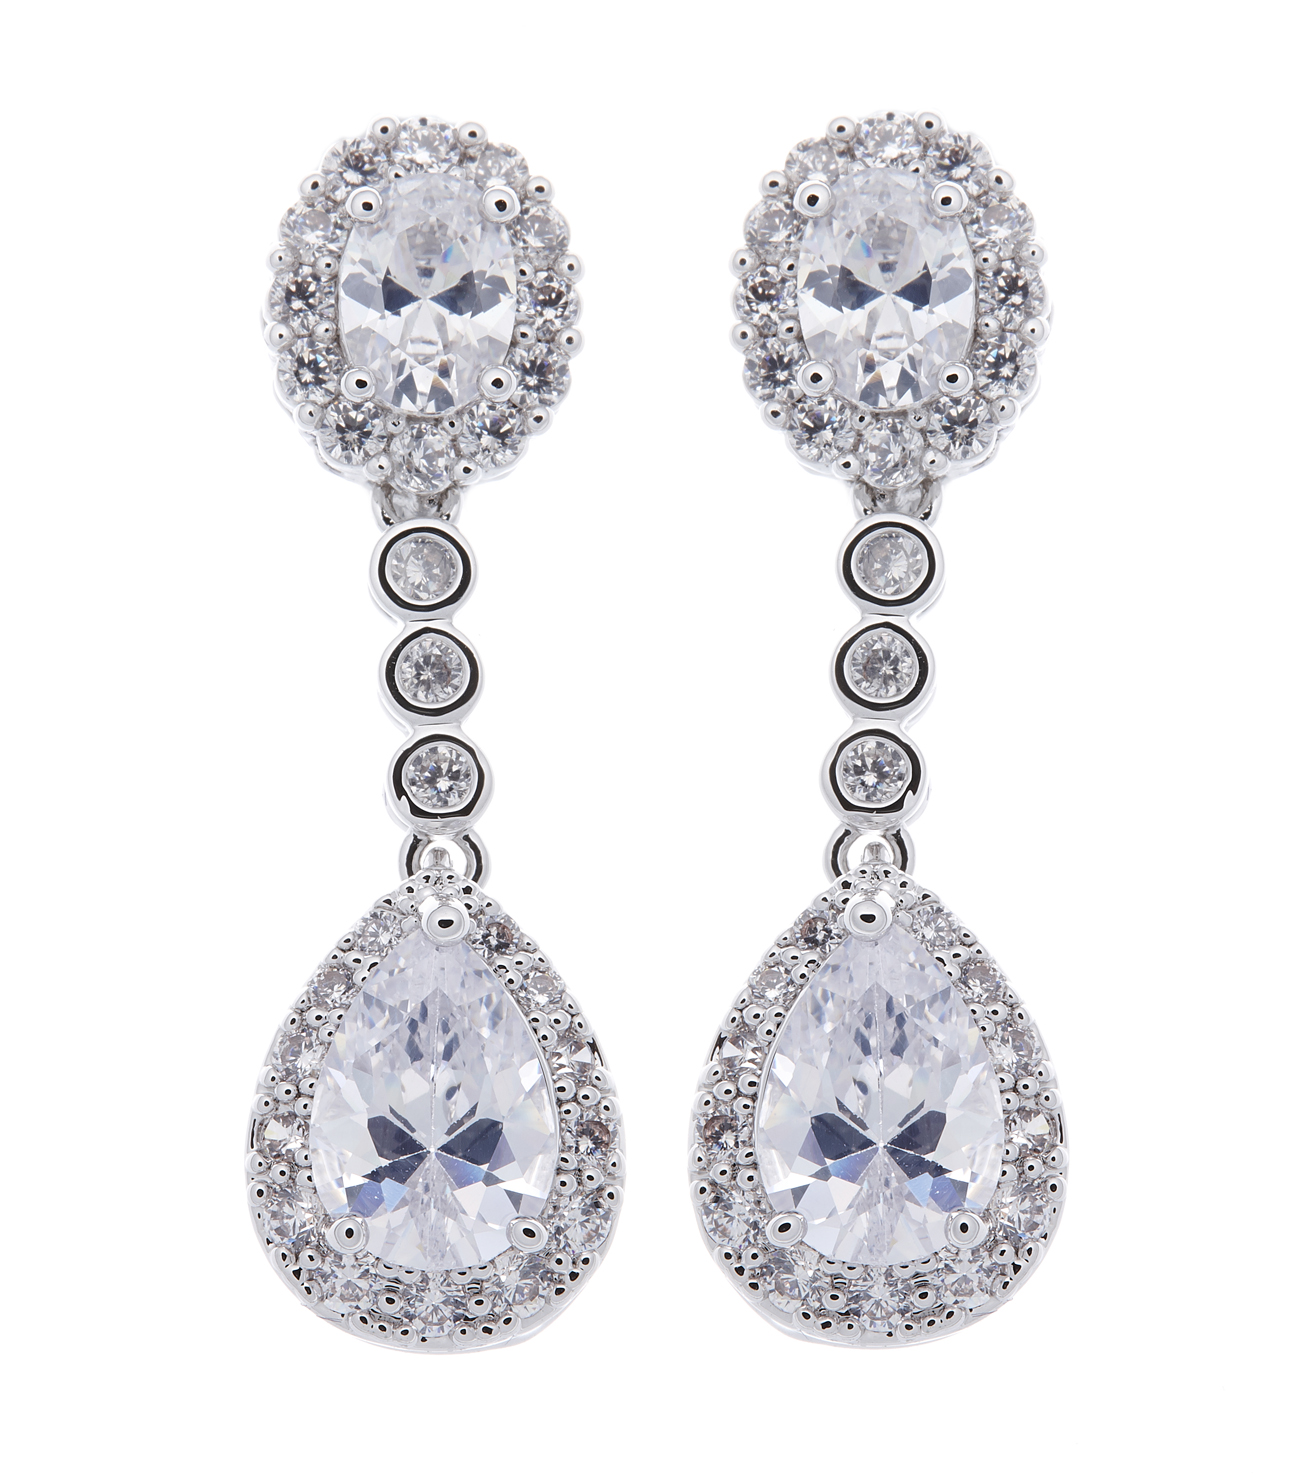 Clip On Earrings - Misty - silver luxury drop earring with clear cubic zirconia crystals and stones